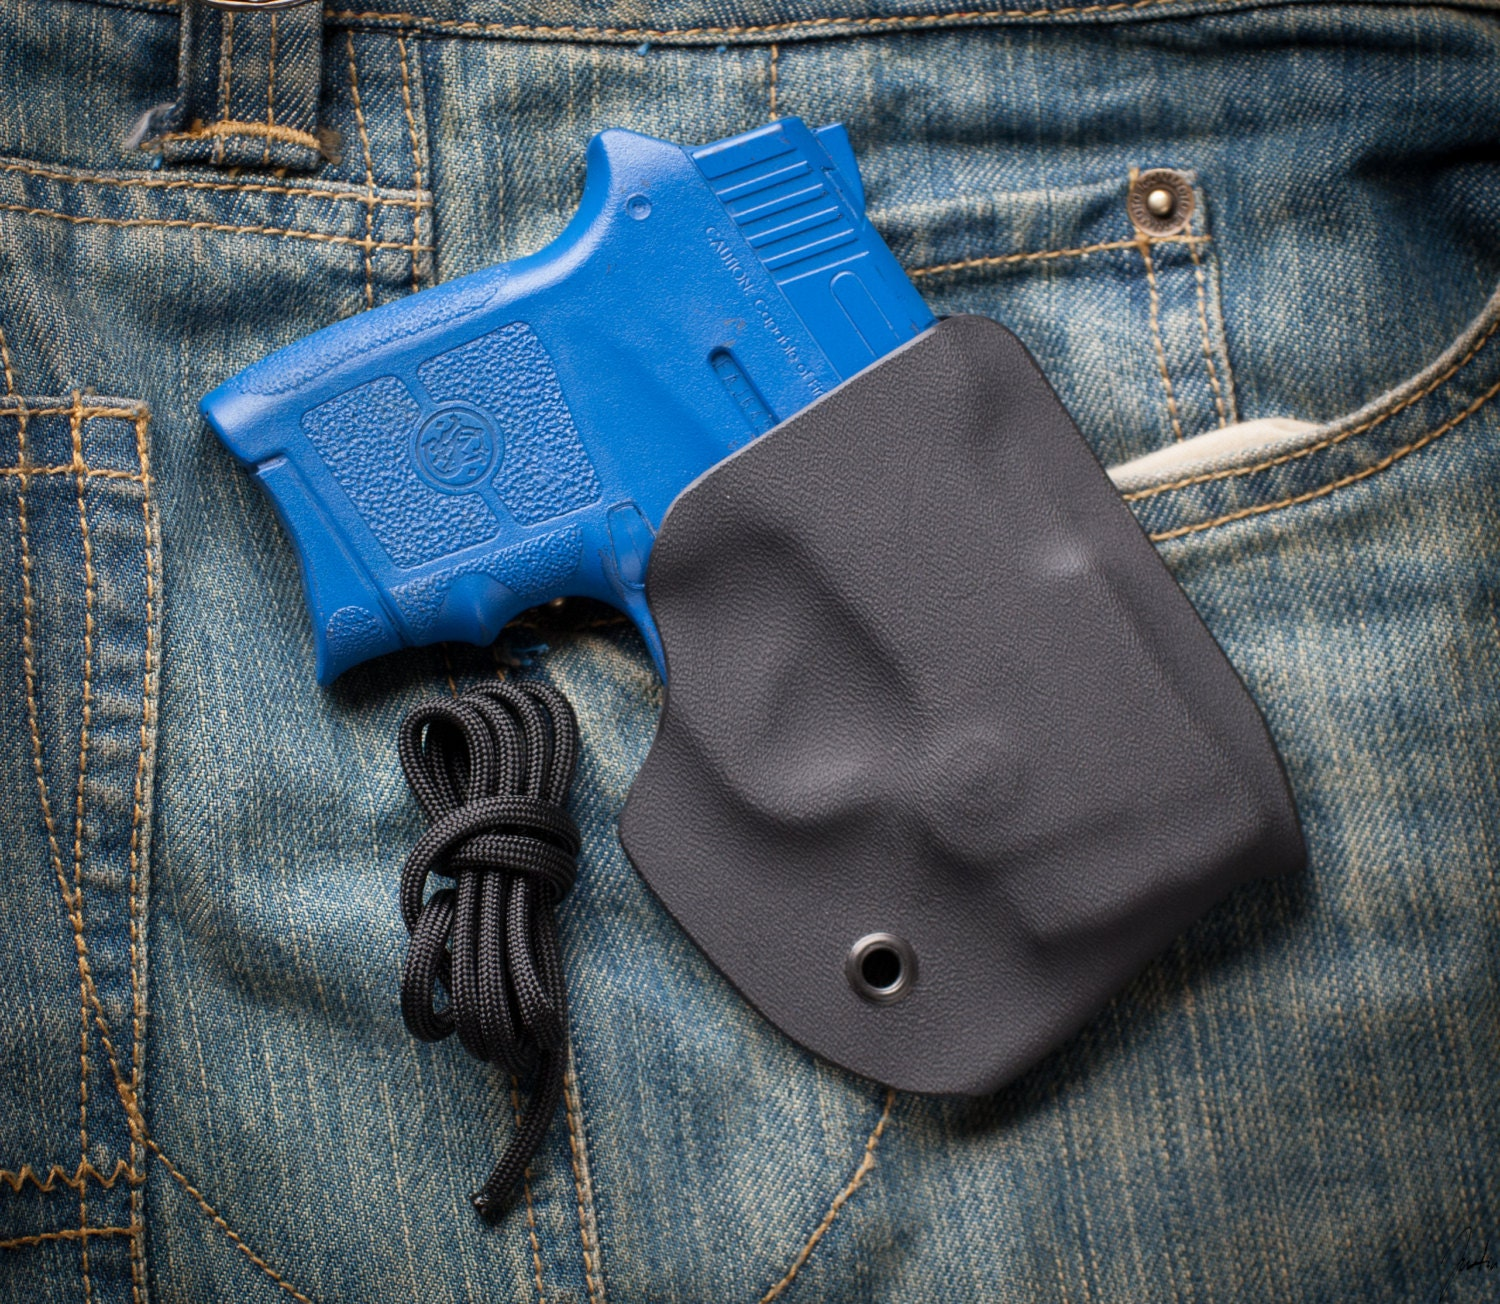 Bodyguard 380 Smith and Wesson Kydex Pocket Carry Gun Micro